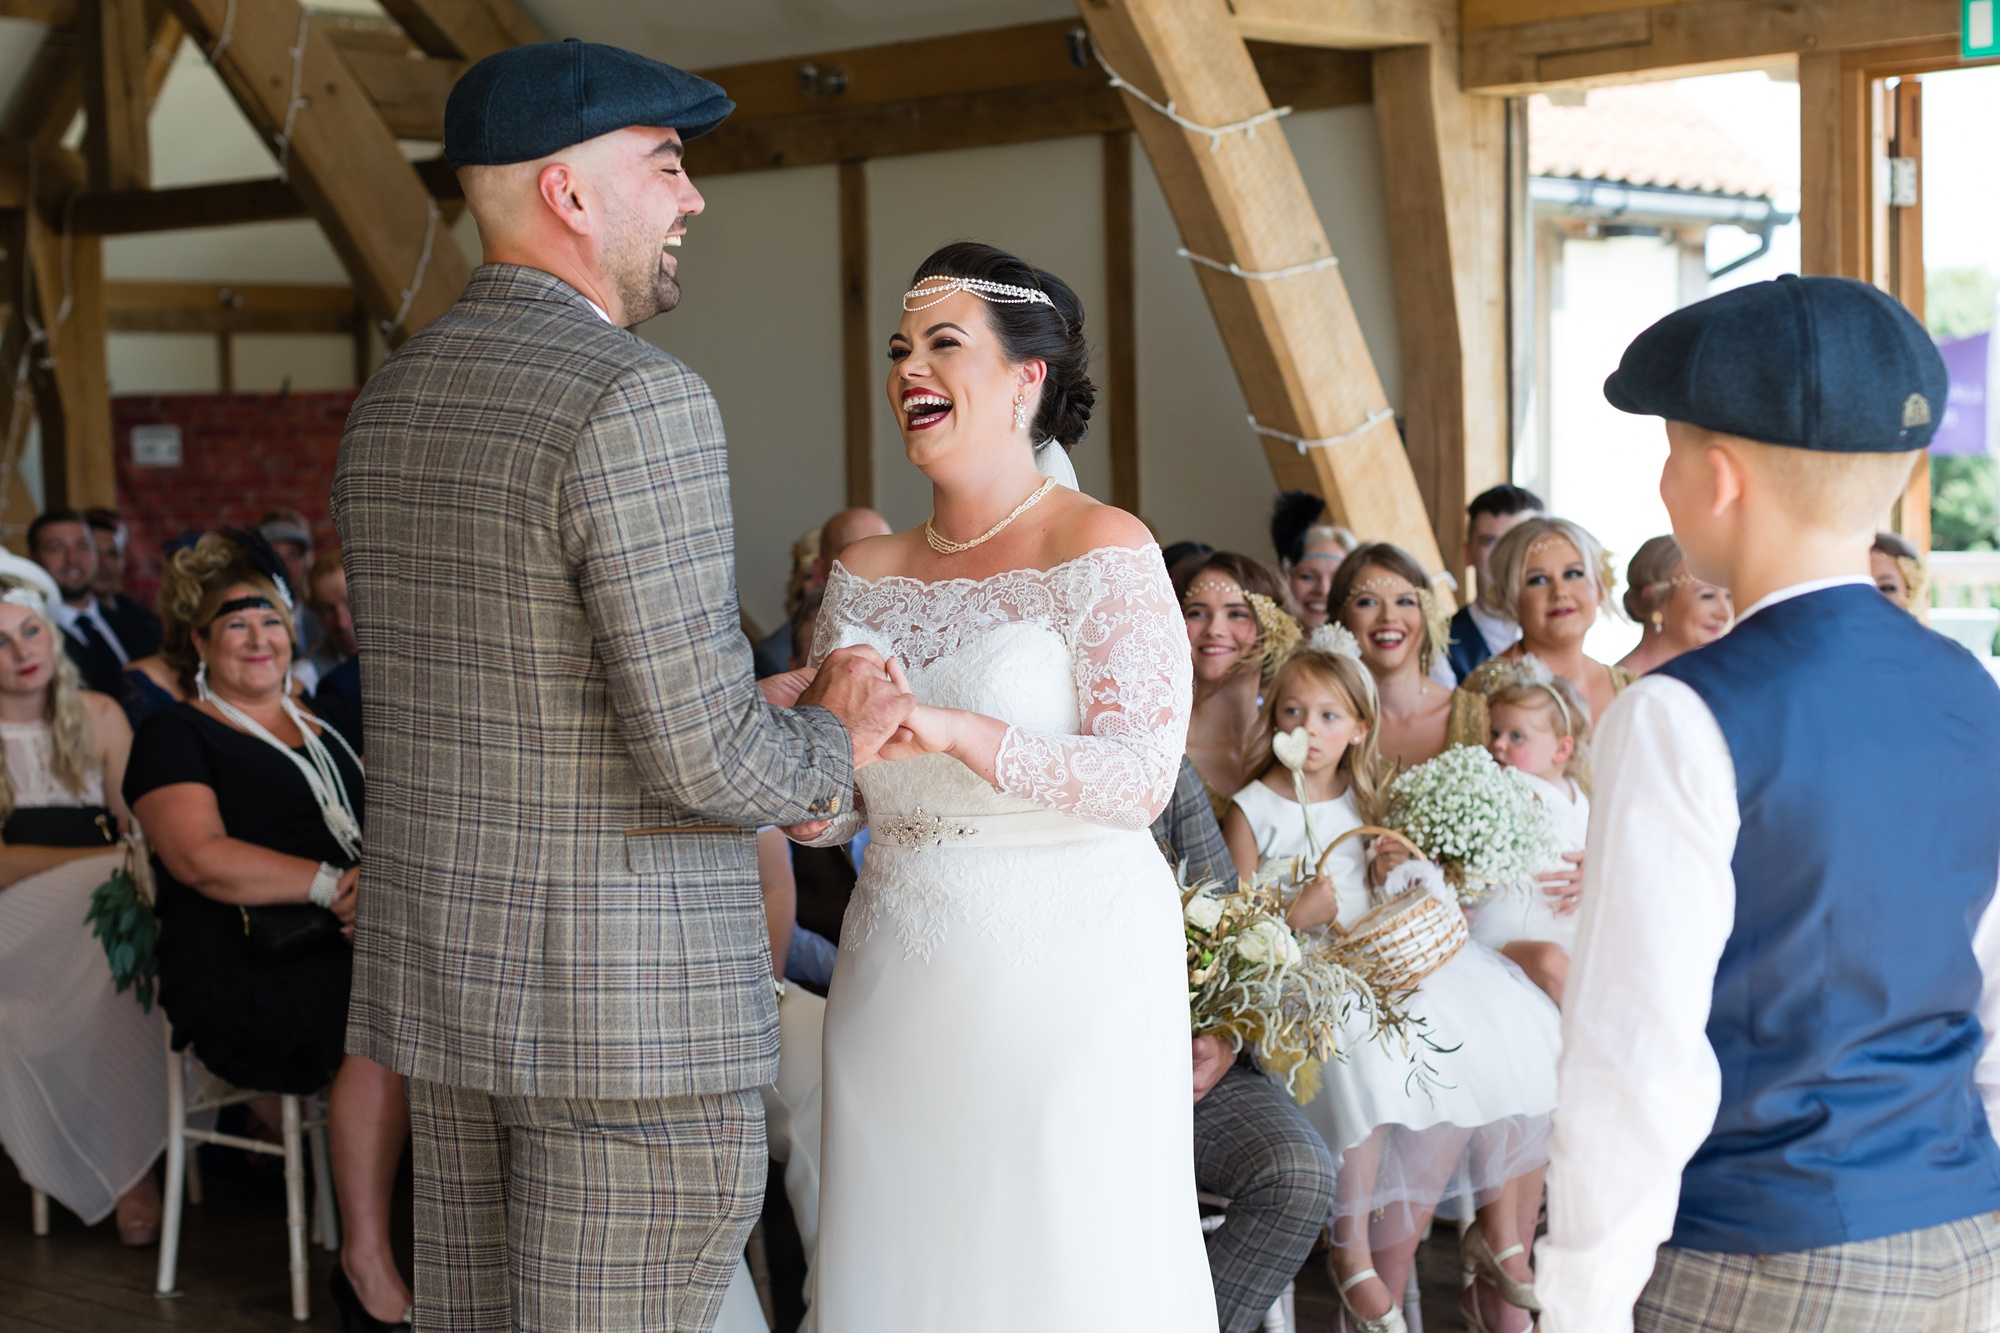 Bride laughs as the couple exchange rings at Sandburn Hall wedding.